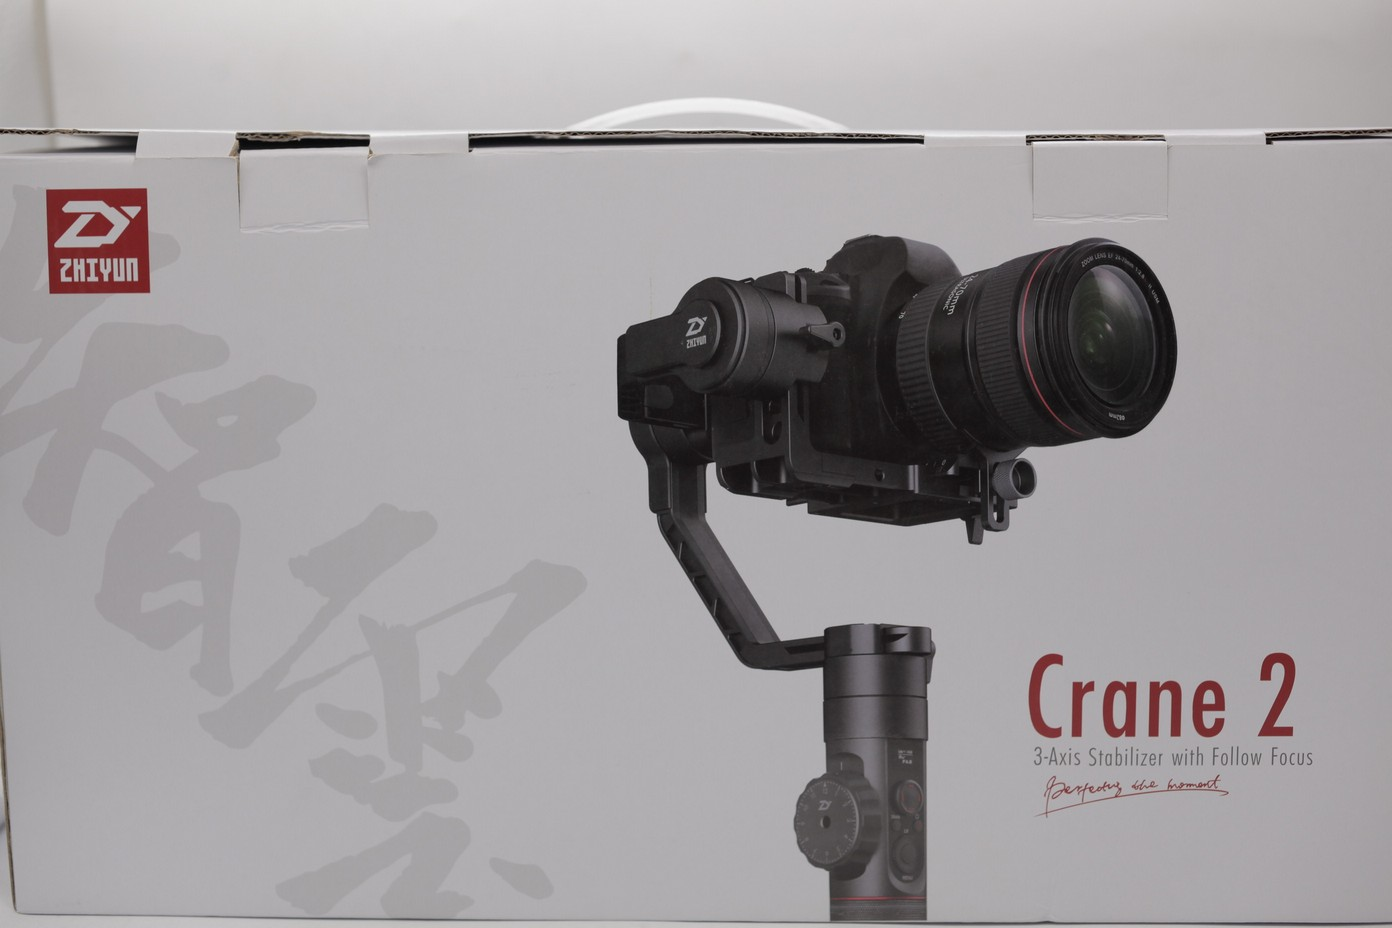 Used - Zhiyun Crane 2 3-Axis Stabilizer with Follow Focus